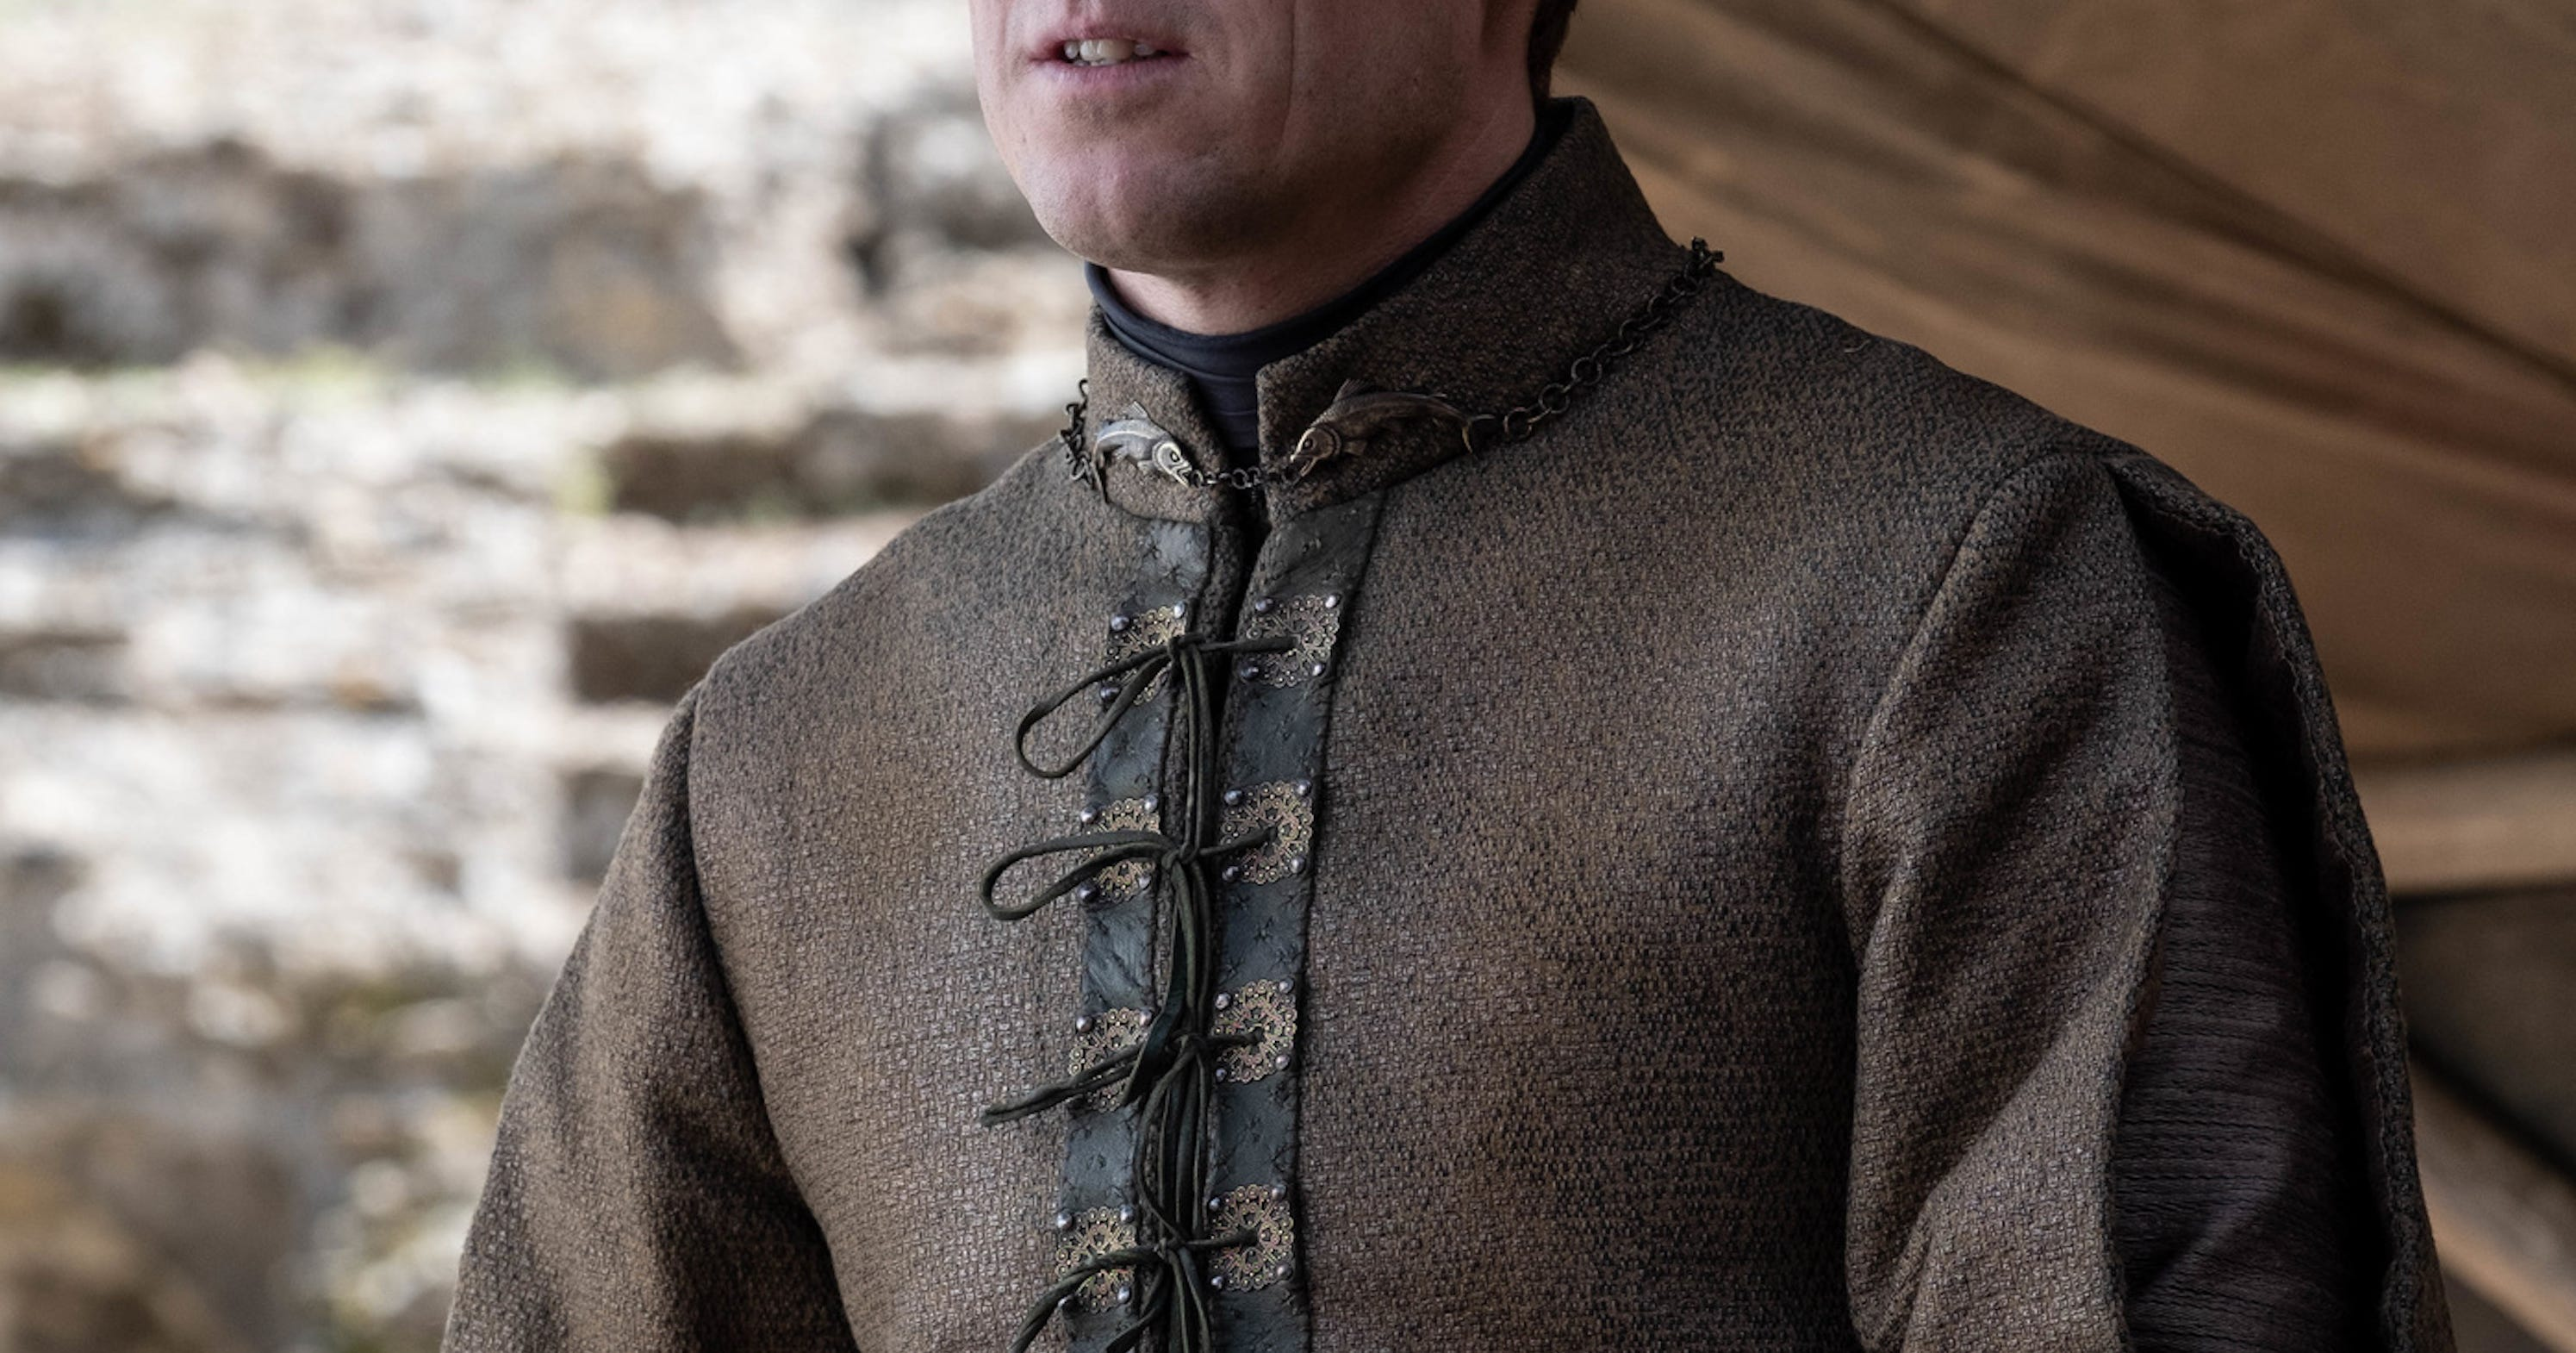 Why People Were Mean To Edmure Tully On Game Of Thrones